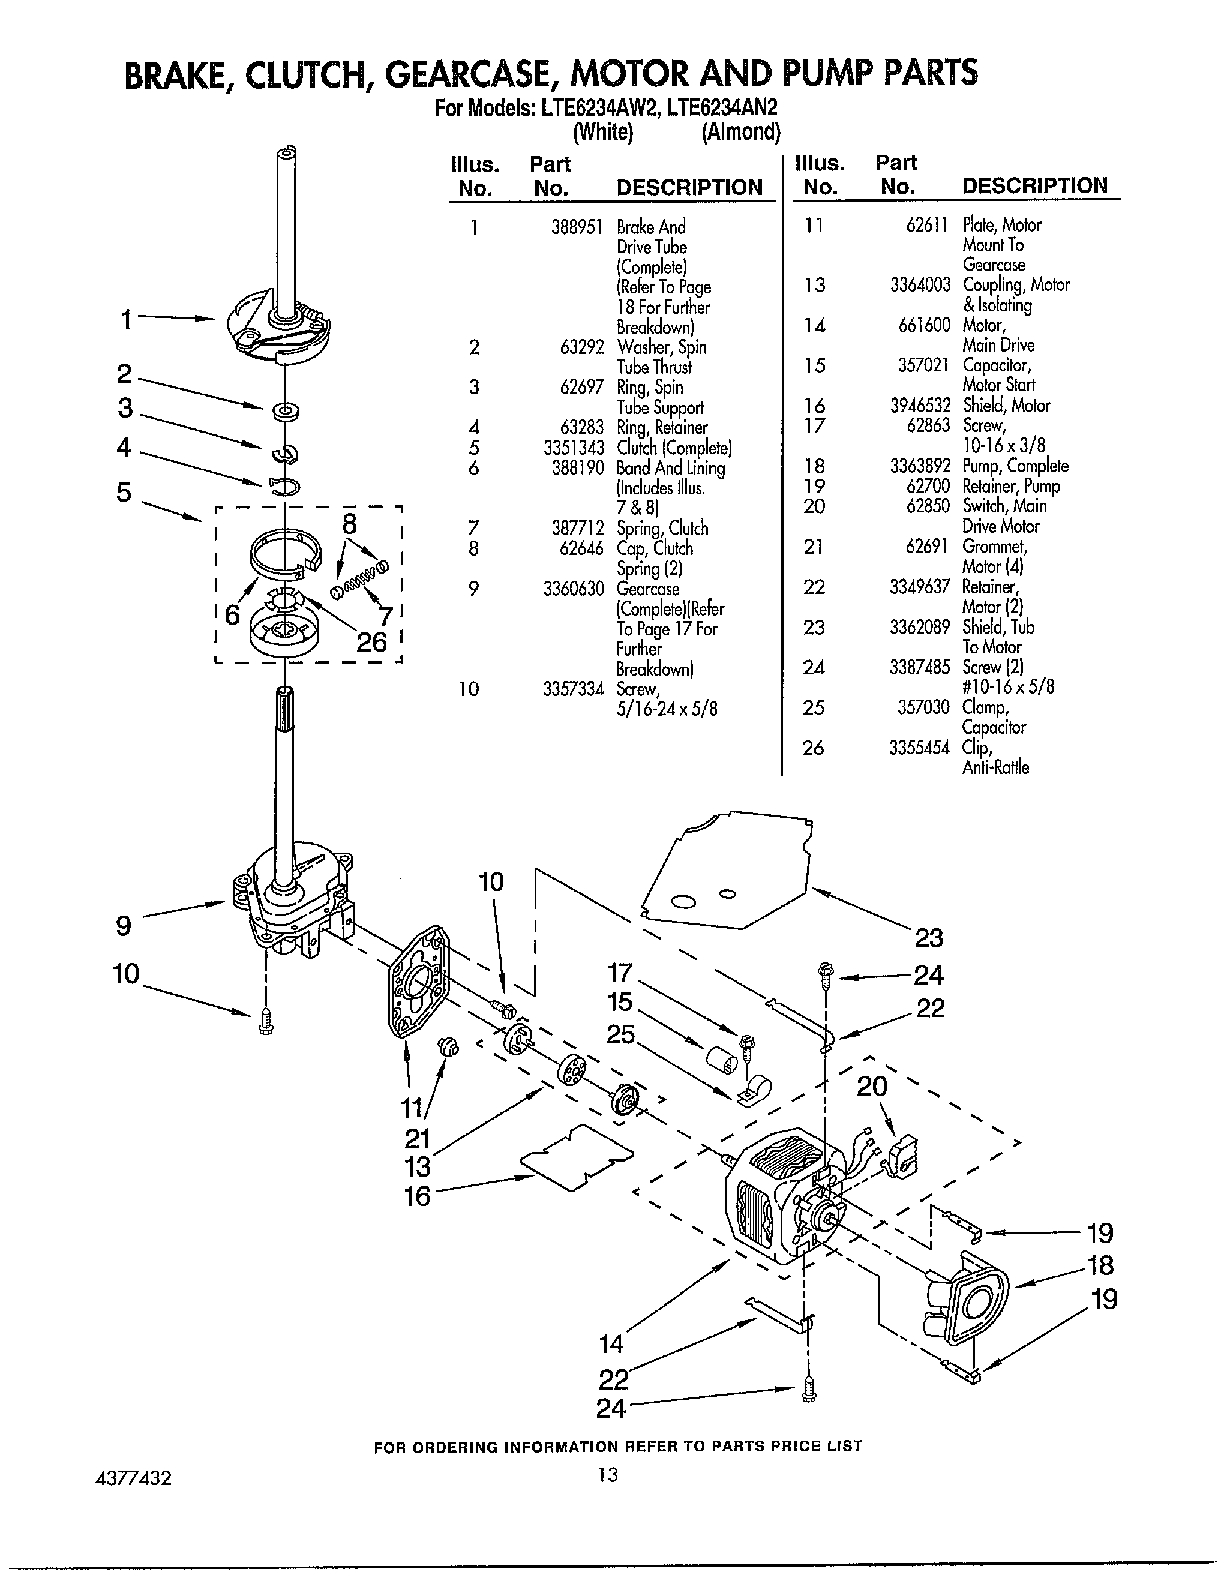 small resolution of whirlpool lte6243an2 brake clutch and motor parts diagram